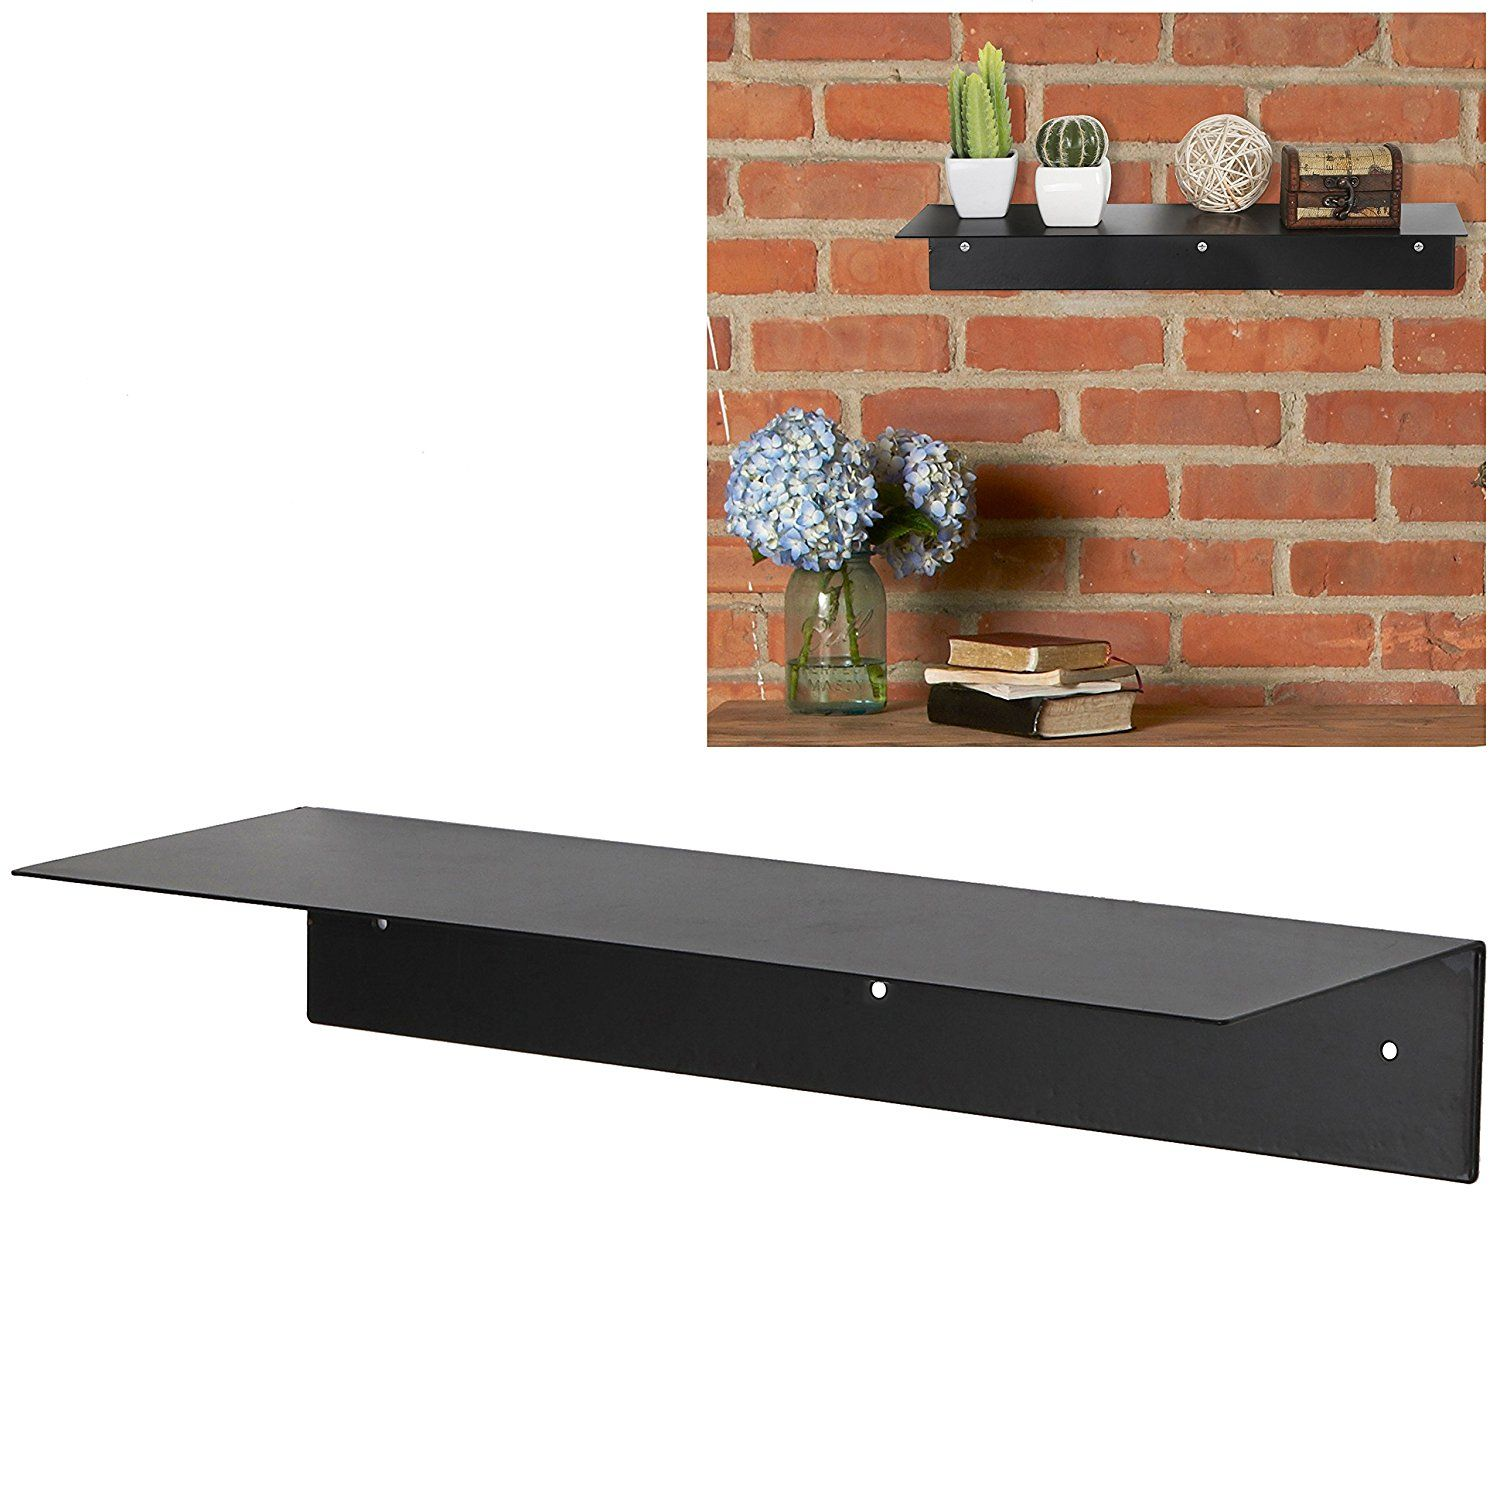 inch modern black metal floating shelf wall mounted display stand hanging organizer rack mygift see this great shelves diy bookshelf box recessed bathroom heavy duty plastic